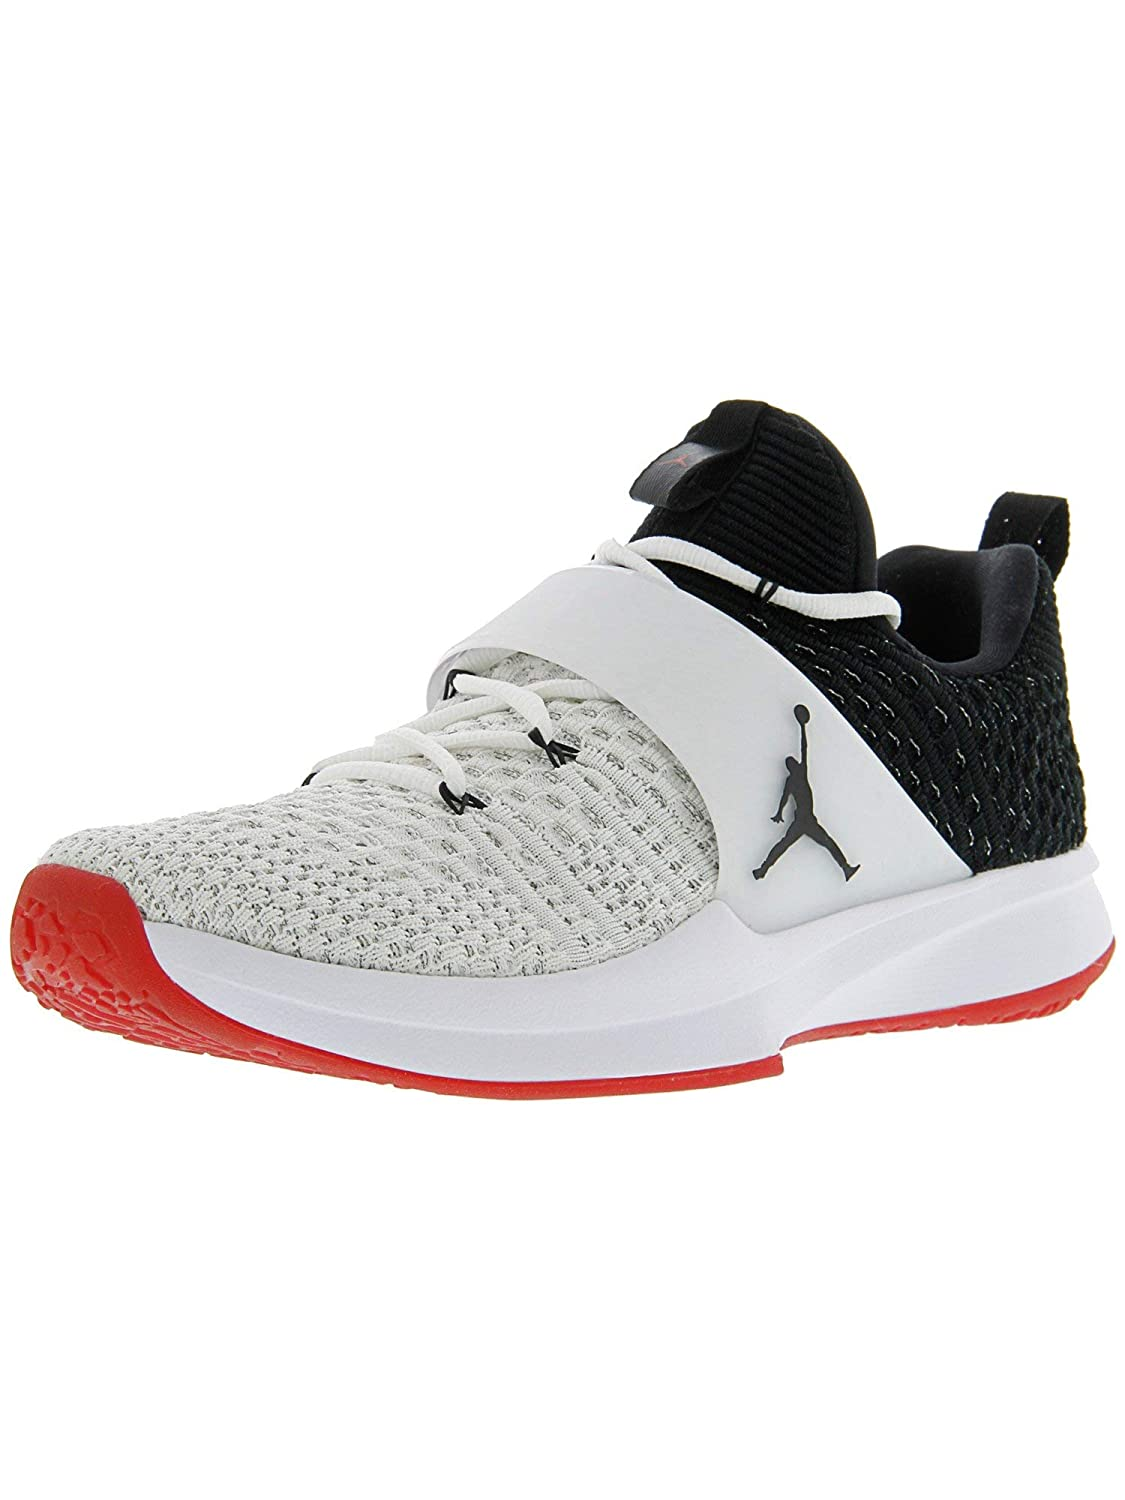 separation shoes e4a87 e692a Amazon.com   Nike Men s Jordan Trainer 2 Flyknit White Black - Gym Red  Ankle-High Fabric Training Shoes 10.5M   Fitness   Cross-Training